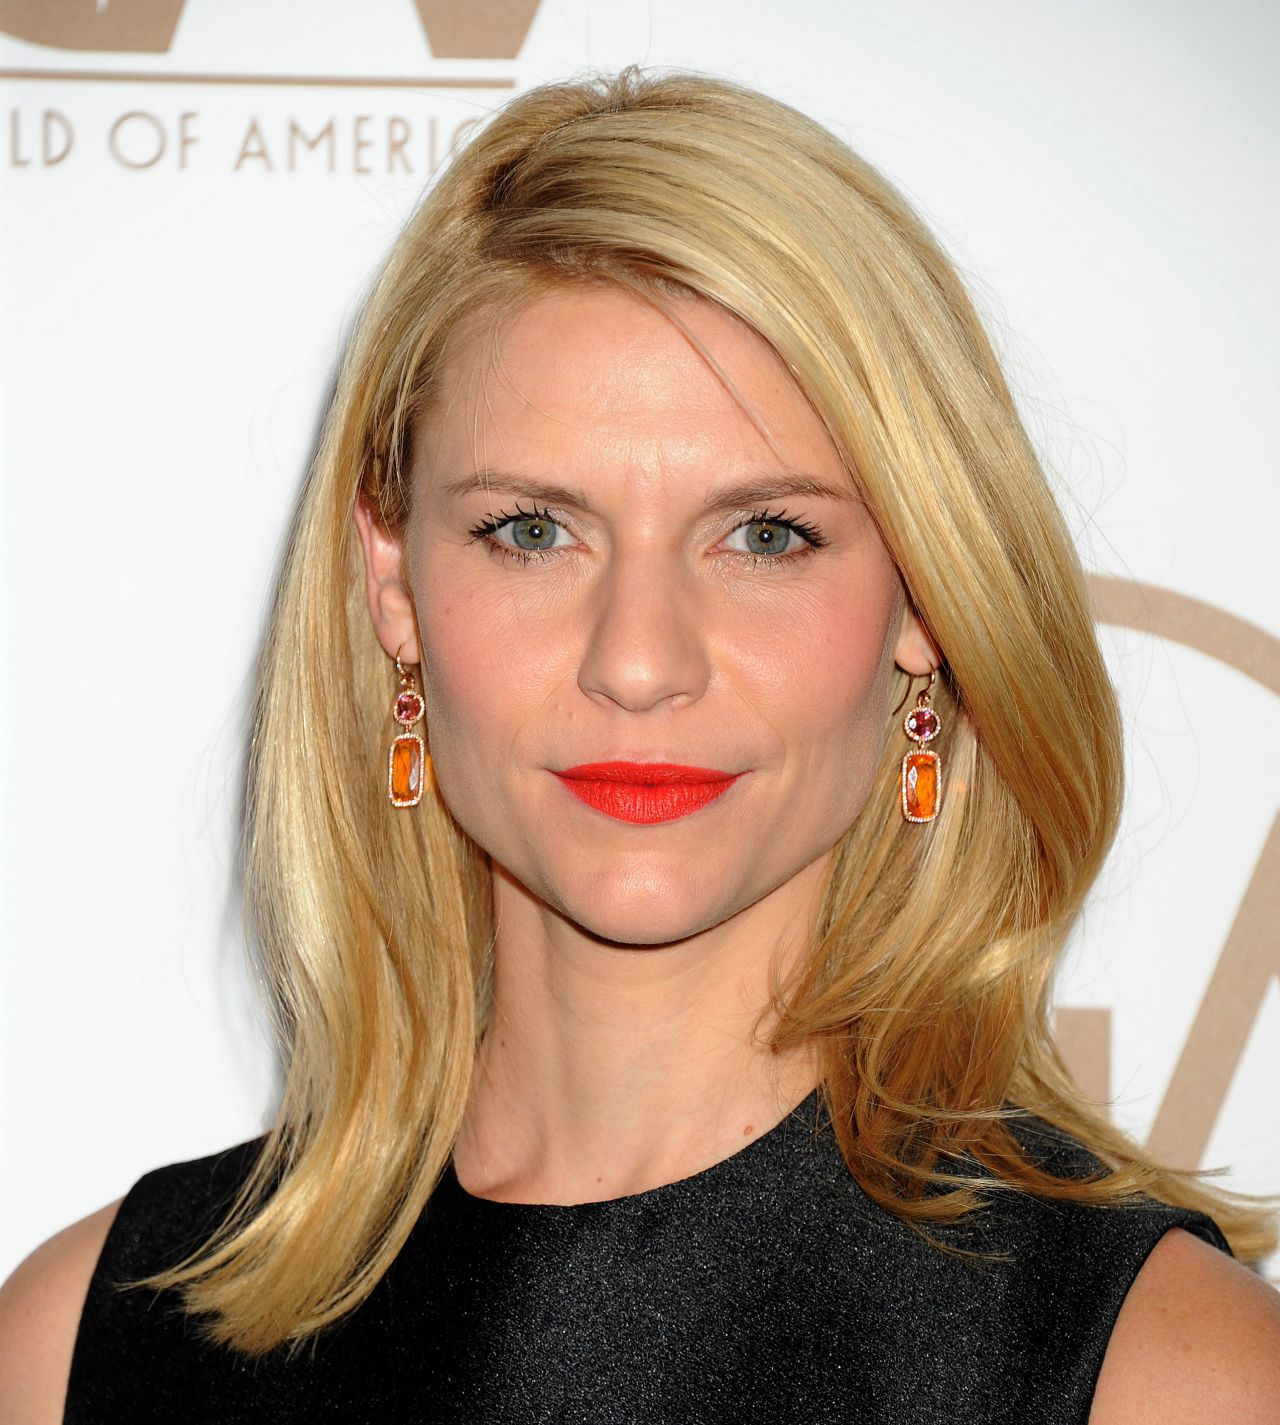 claire-danes-2015-producers-guild-awards-in-los-angeles_1